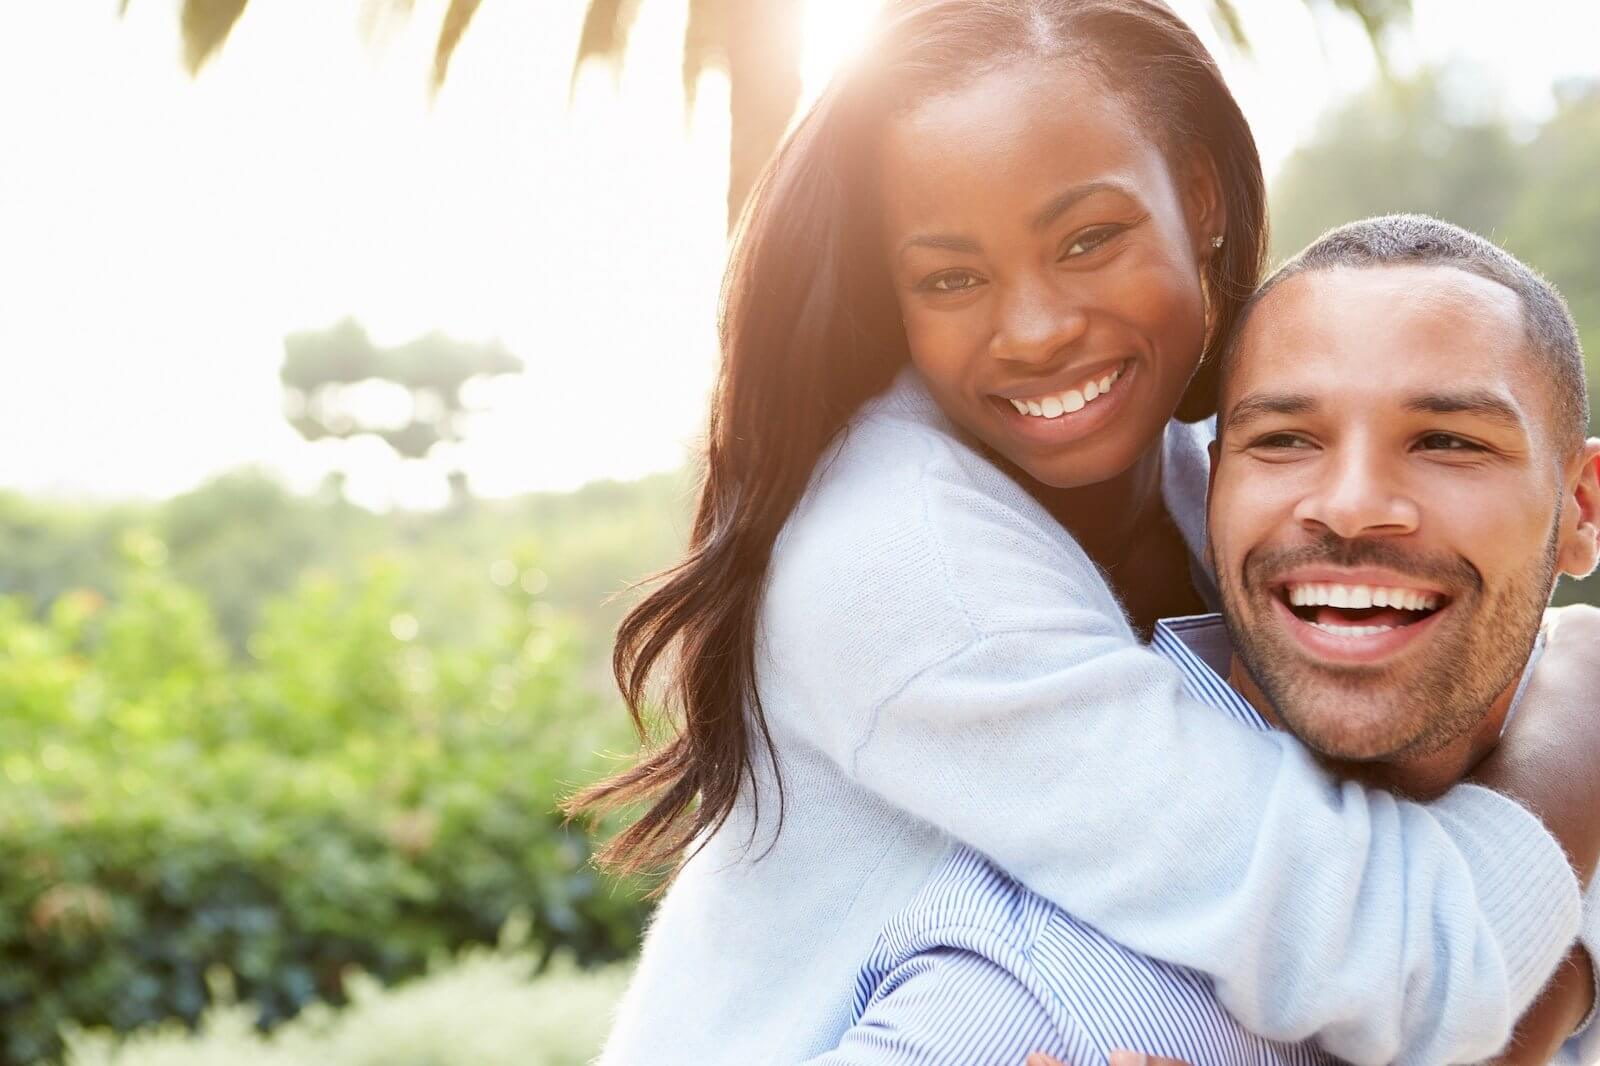 Financial Topics to Discuss With Your Spouse